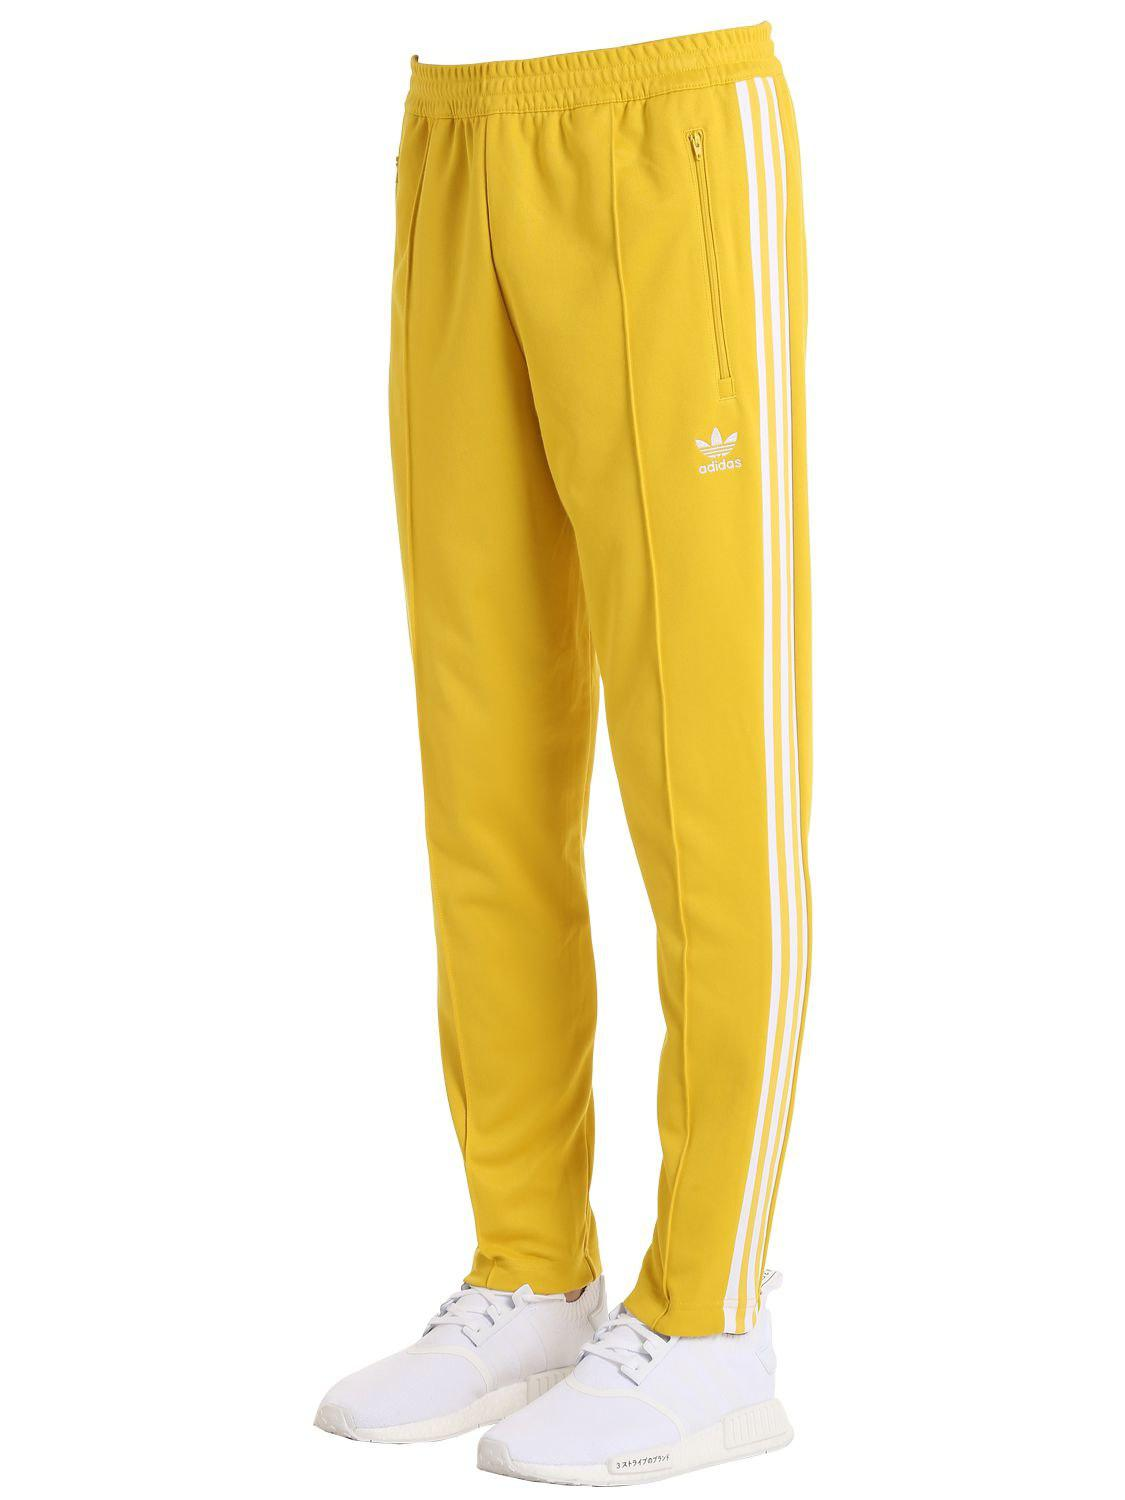 40a228ae2 adidas-originals-YELLOW-Franz-Beckenbauer-Pique-Track-Pants.jpeg